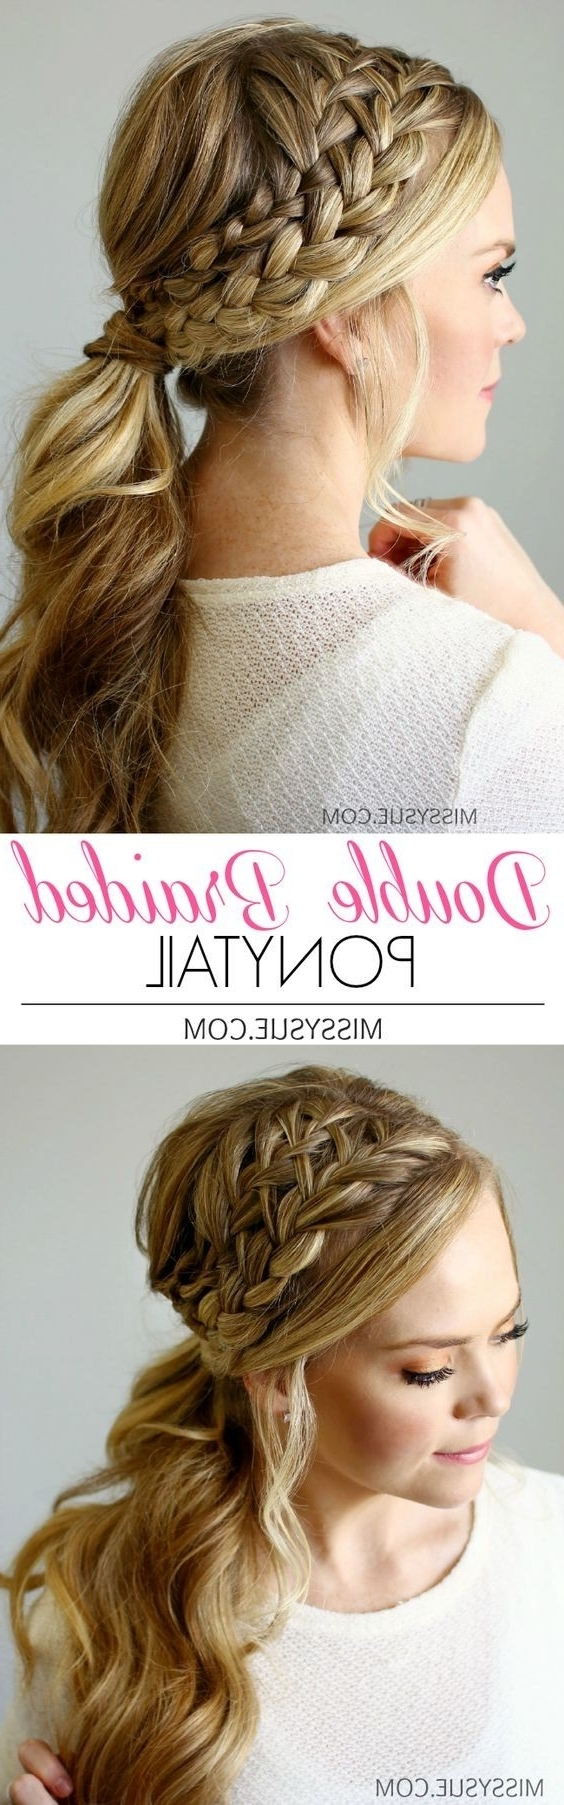 2017 Braided Crown Pony Hairstyles In 18 Cute Braided Ponytail Styles – Popular Haircuts (View 2 of 20)